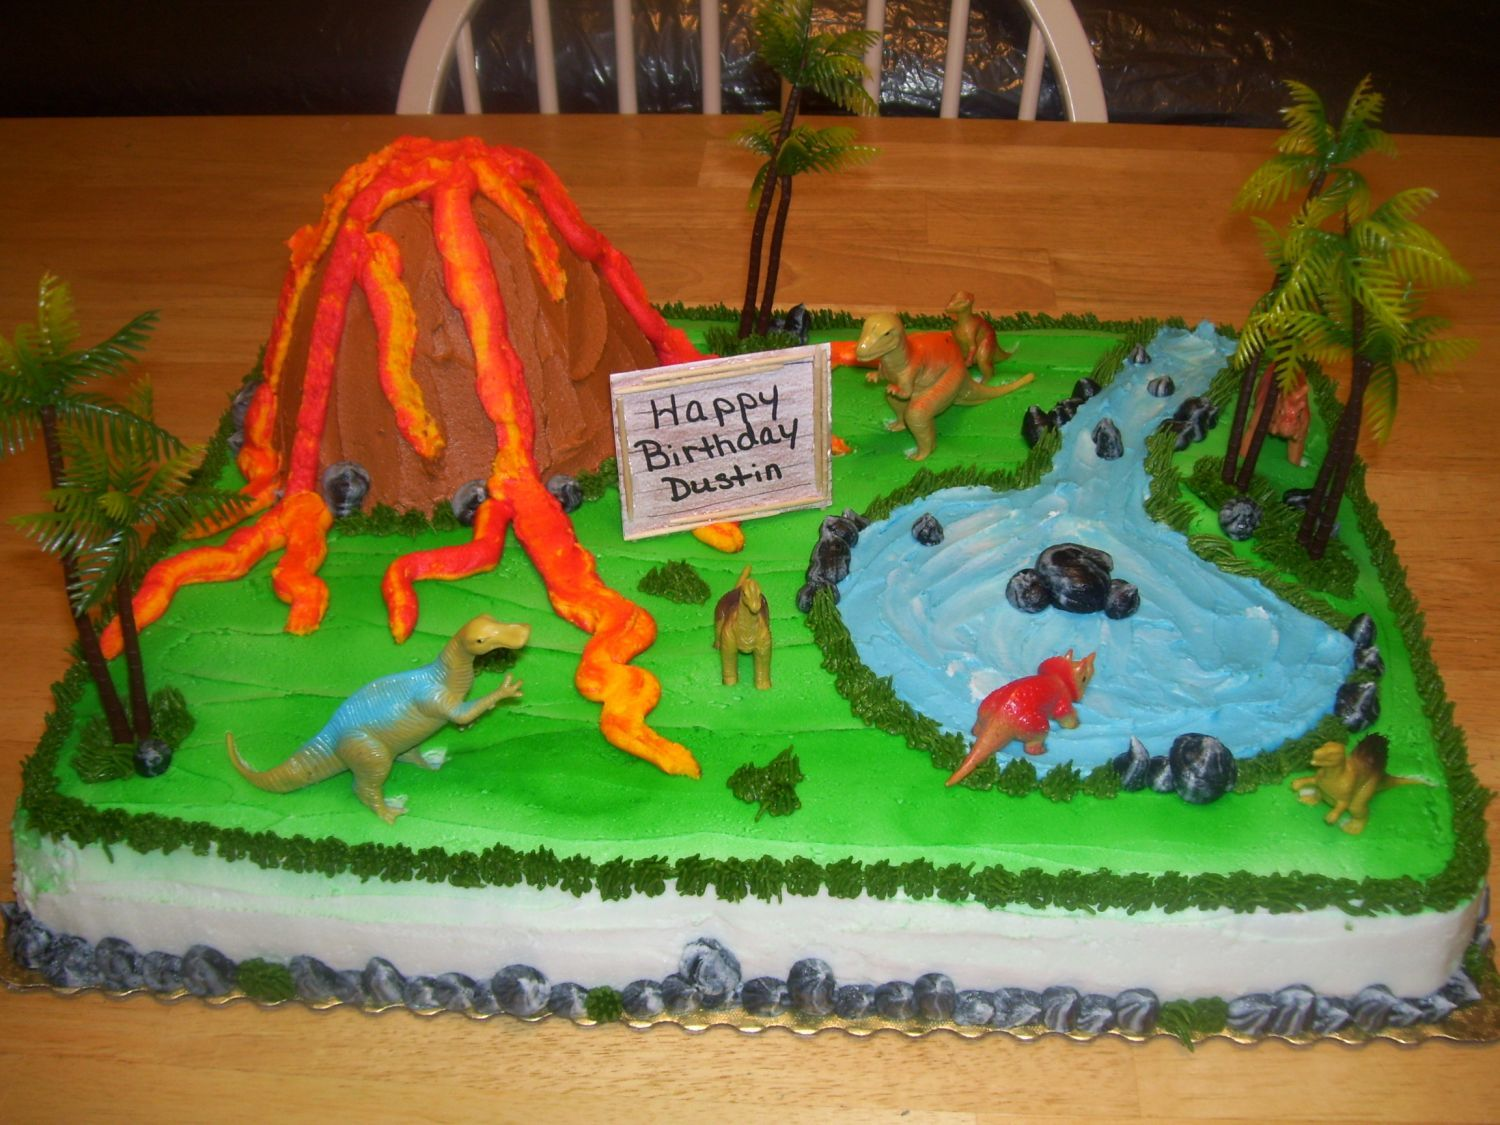 Dinosaur Birthday Cake Decorating Ideas : Dinosaurs - This is a 1/2 sheet cake decorated in ...